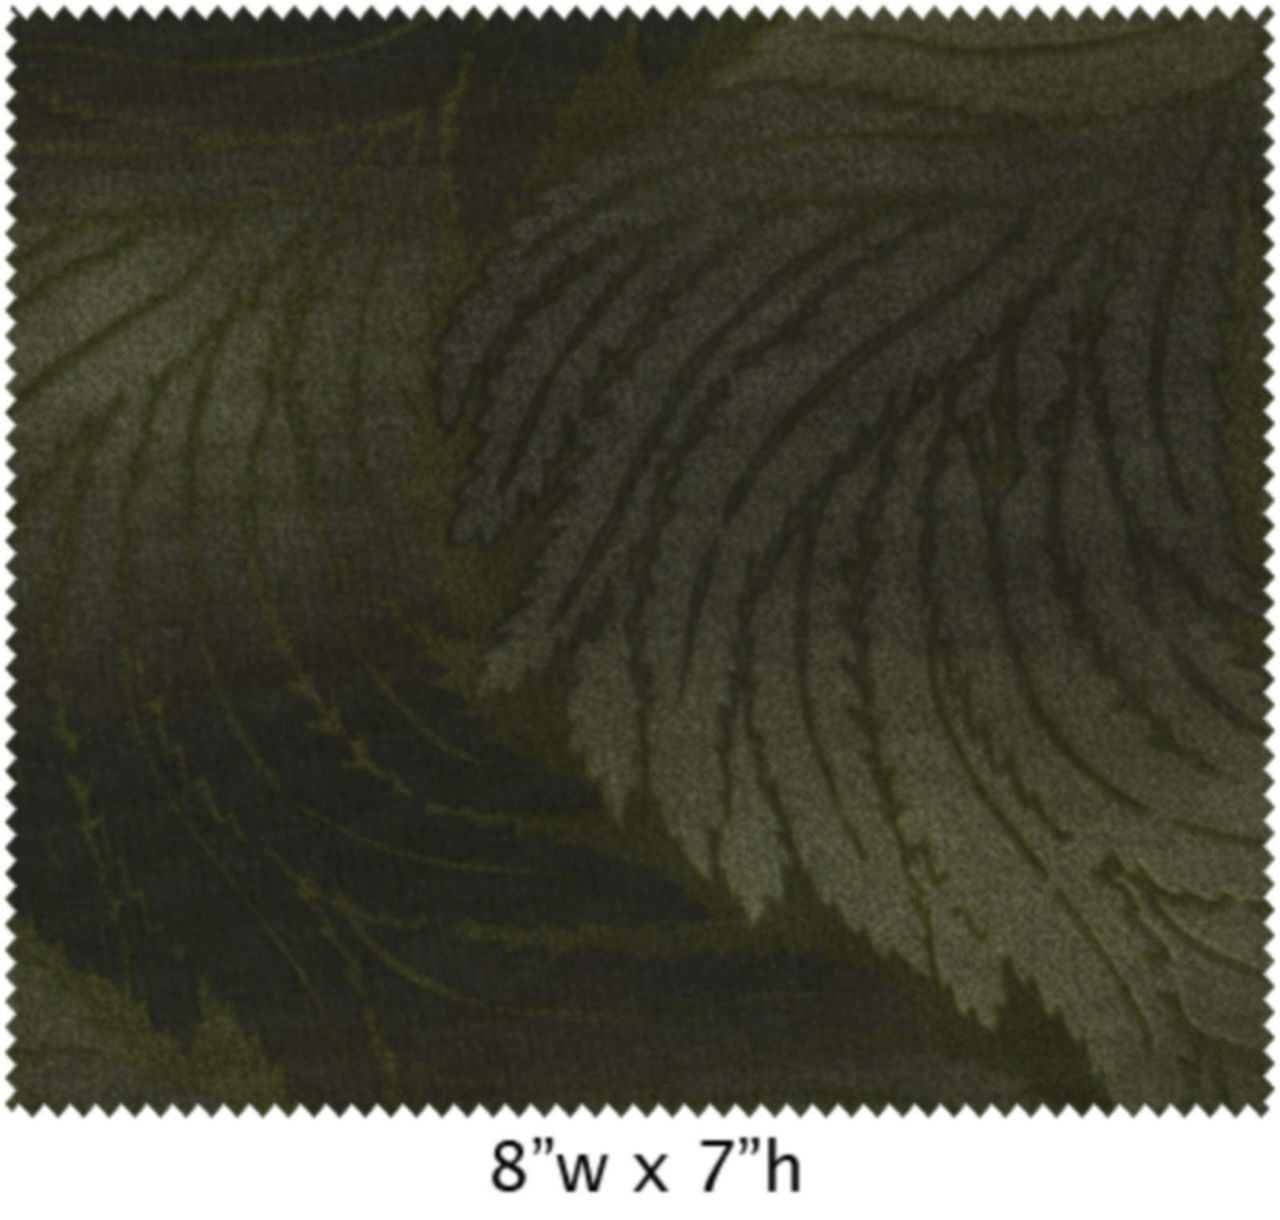 GREEN & GRAY ON GREEN LARGE FERN TYPE LEAVES - EESSER11069-801 - Serenity  Basics - Cara Collection